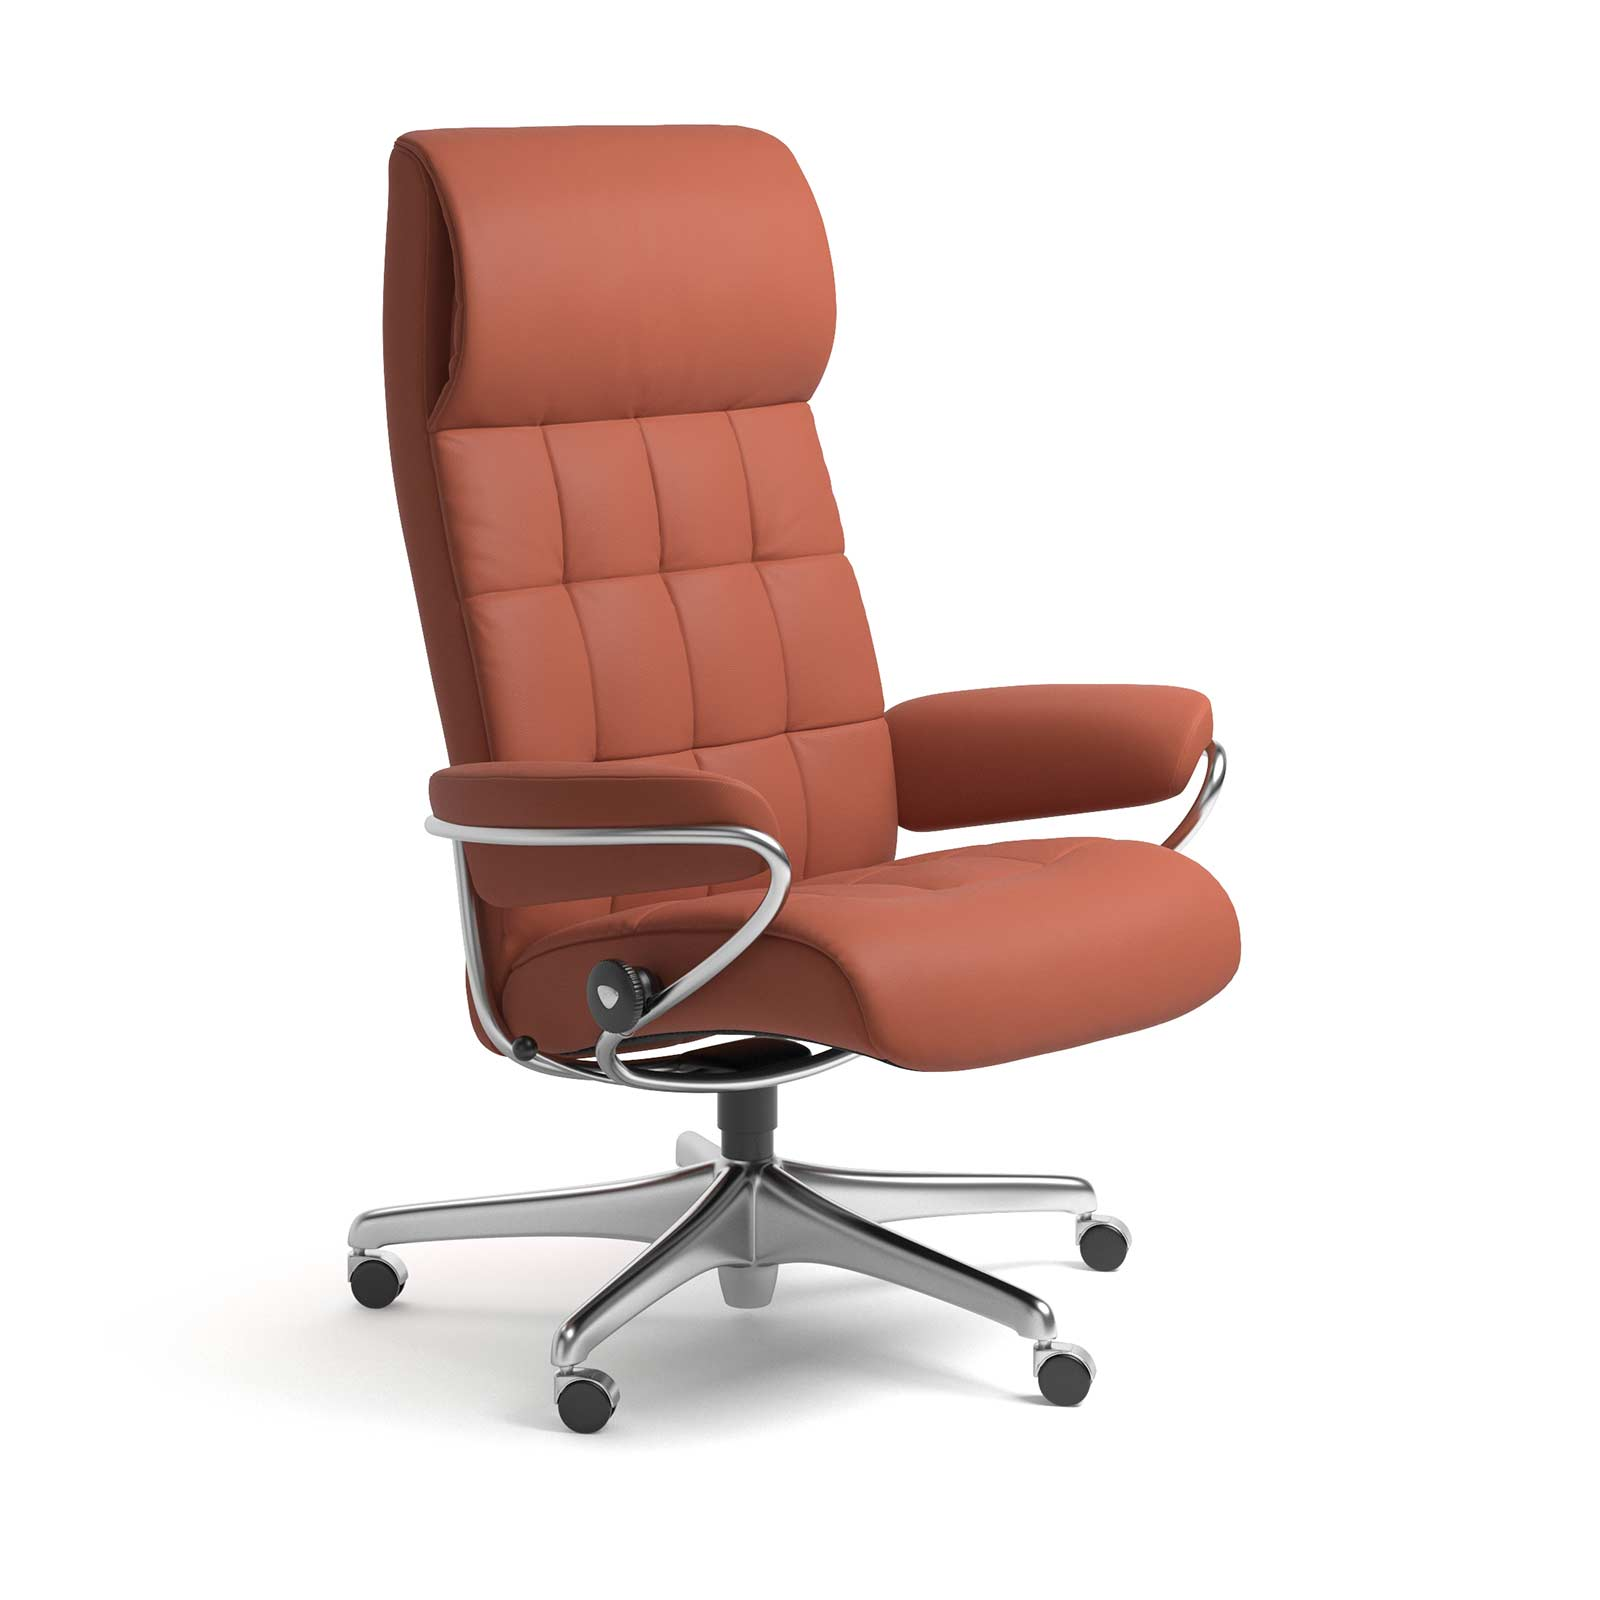 Stressless London Luxuriöser Leder Bürostuhl Stressless